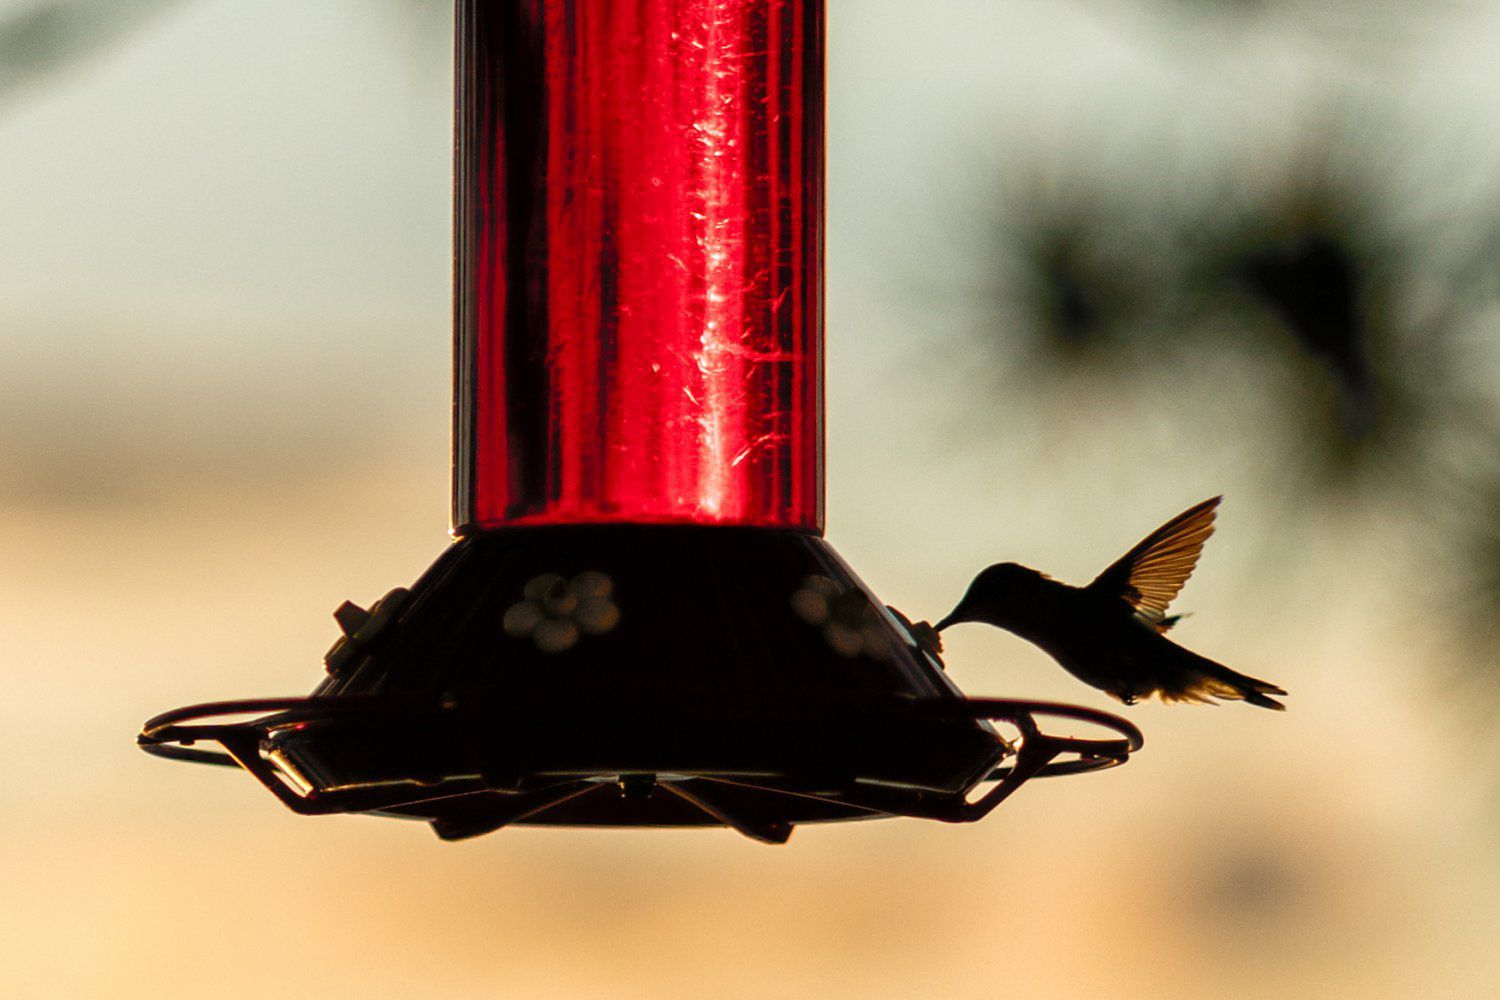 Top 10 Hummingbird Nectar Mistakes in 2020 (With images